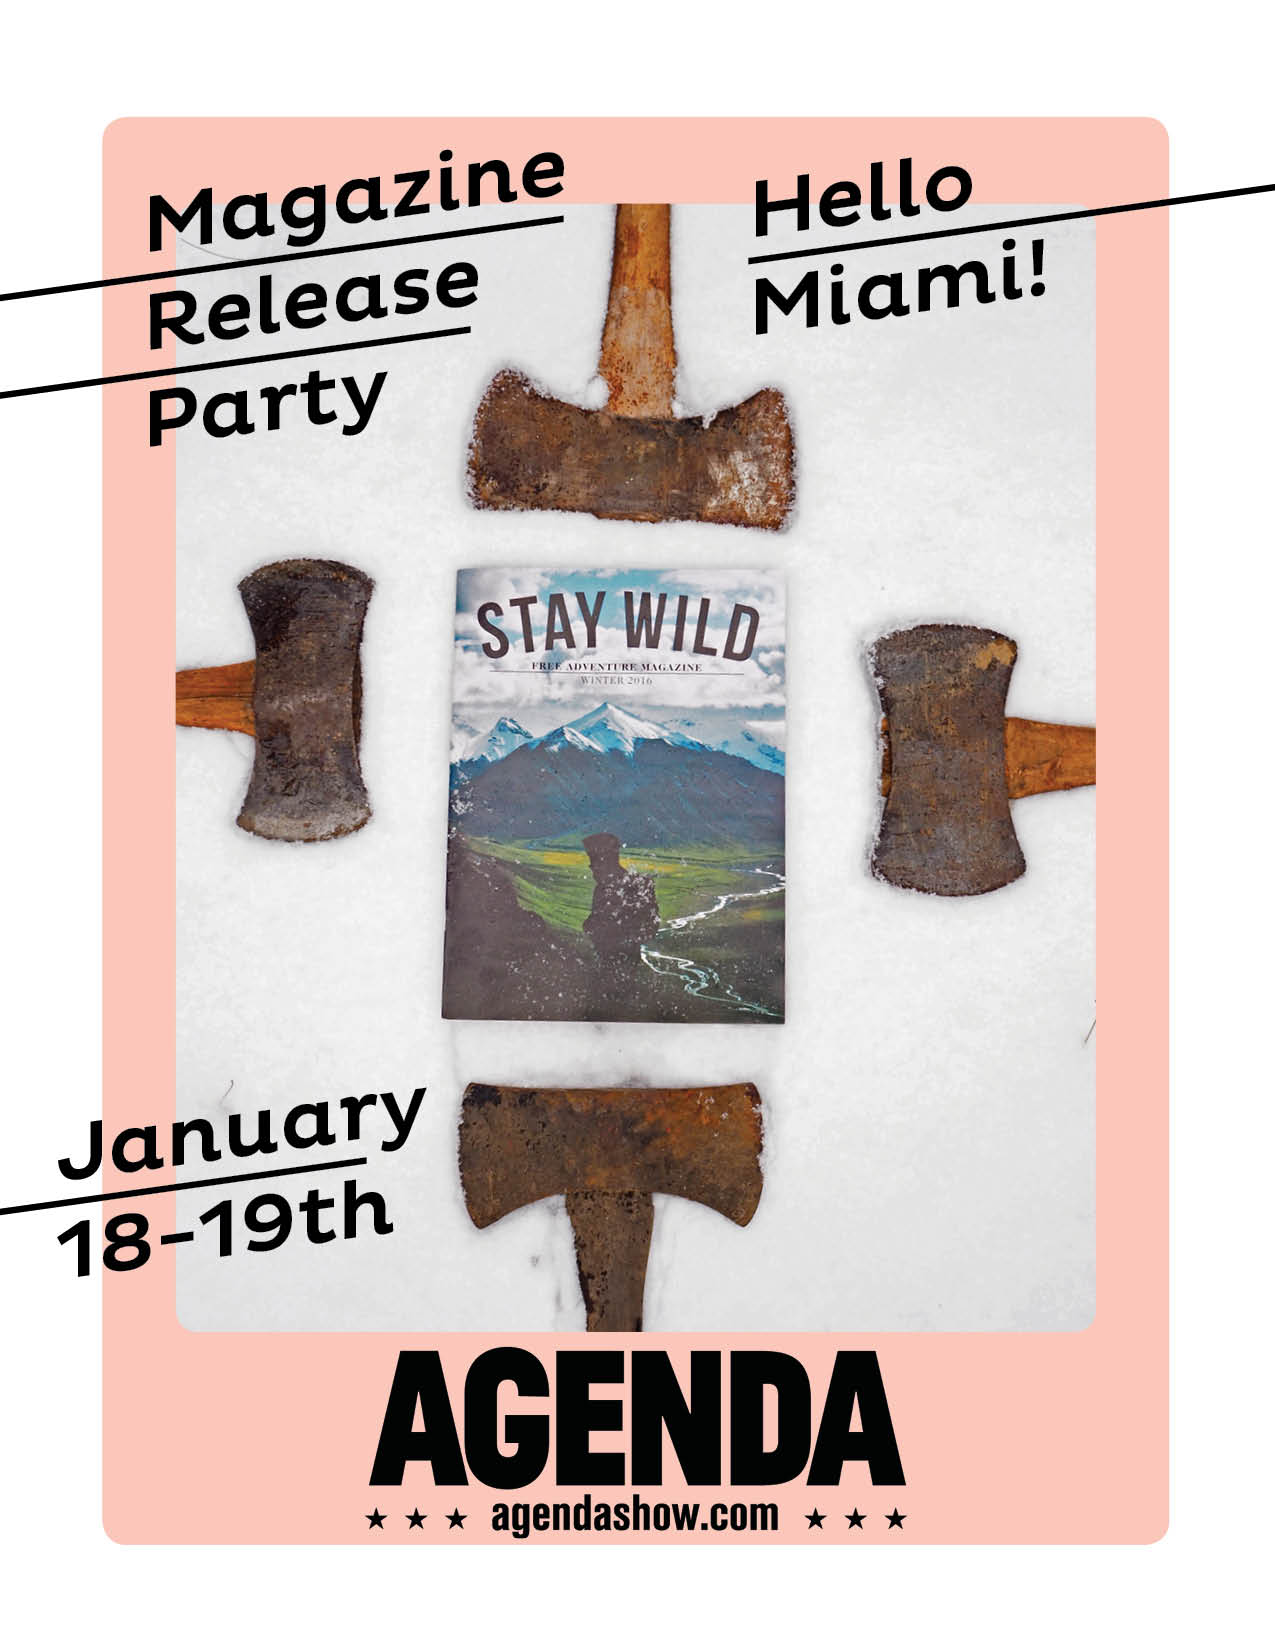 Aloha Florida! Come for the free magazines, stay for the  Agenda show .